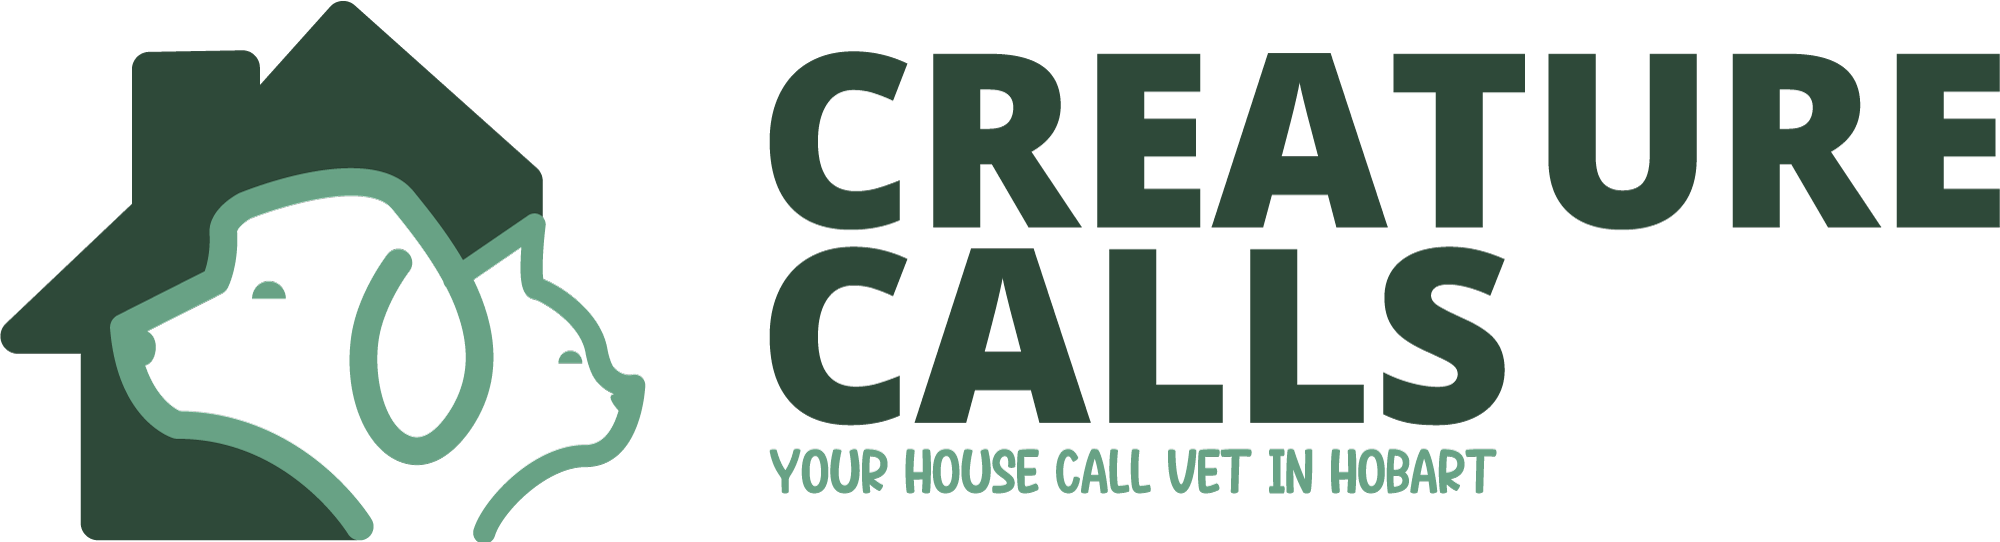 creature calls logo of cat and dog in green